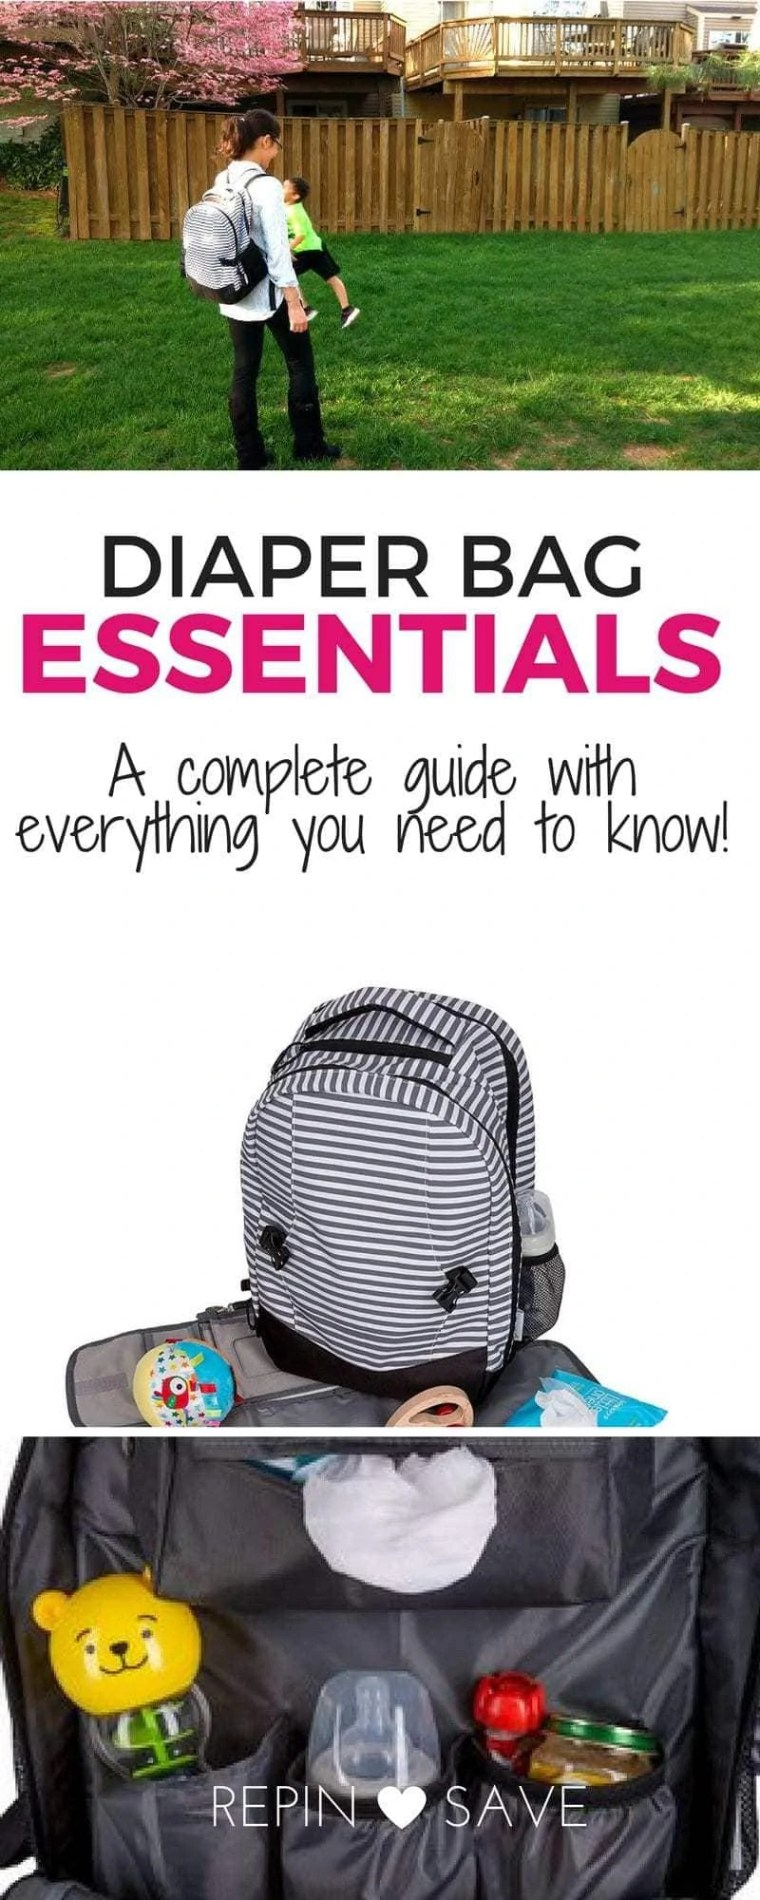 A thorough guide with exactly what you need in your diaper bag and why! A full diaper bag essentials post, plus a Diaper bag backpack review, diaper bag organization tips, and a diaper bag checklist!